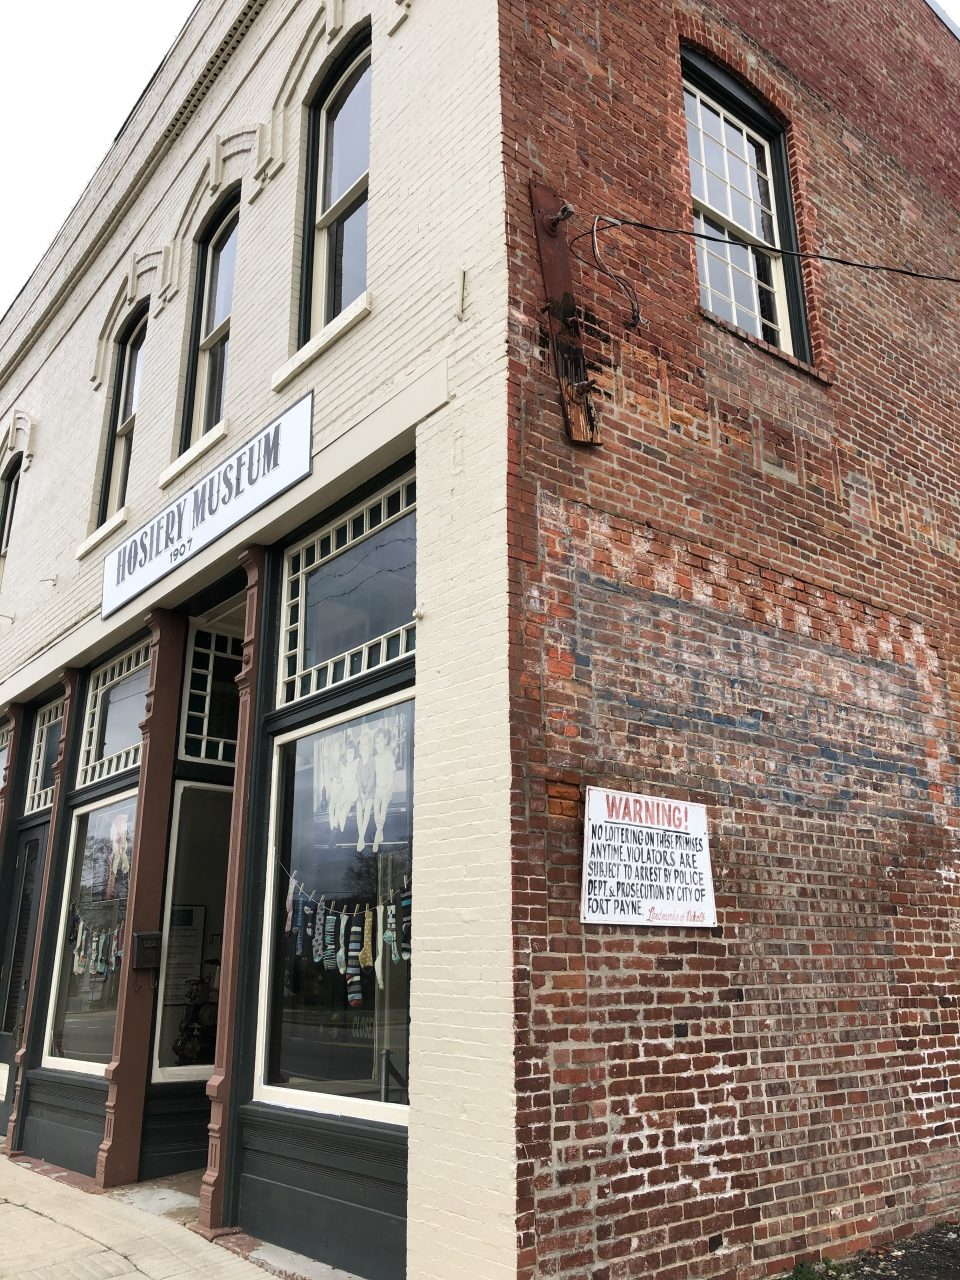 The Ft. Payne Hosiery Museum honors the region's history of textile manufacturing. The old W.B. Davis Hosiery Mill seen in the video operated just a few blocks away from this location from 1874-1974.